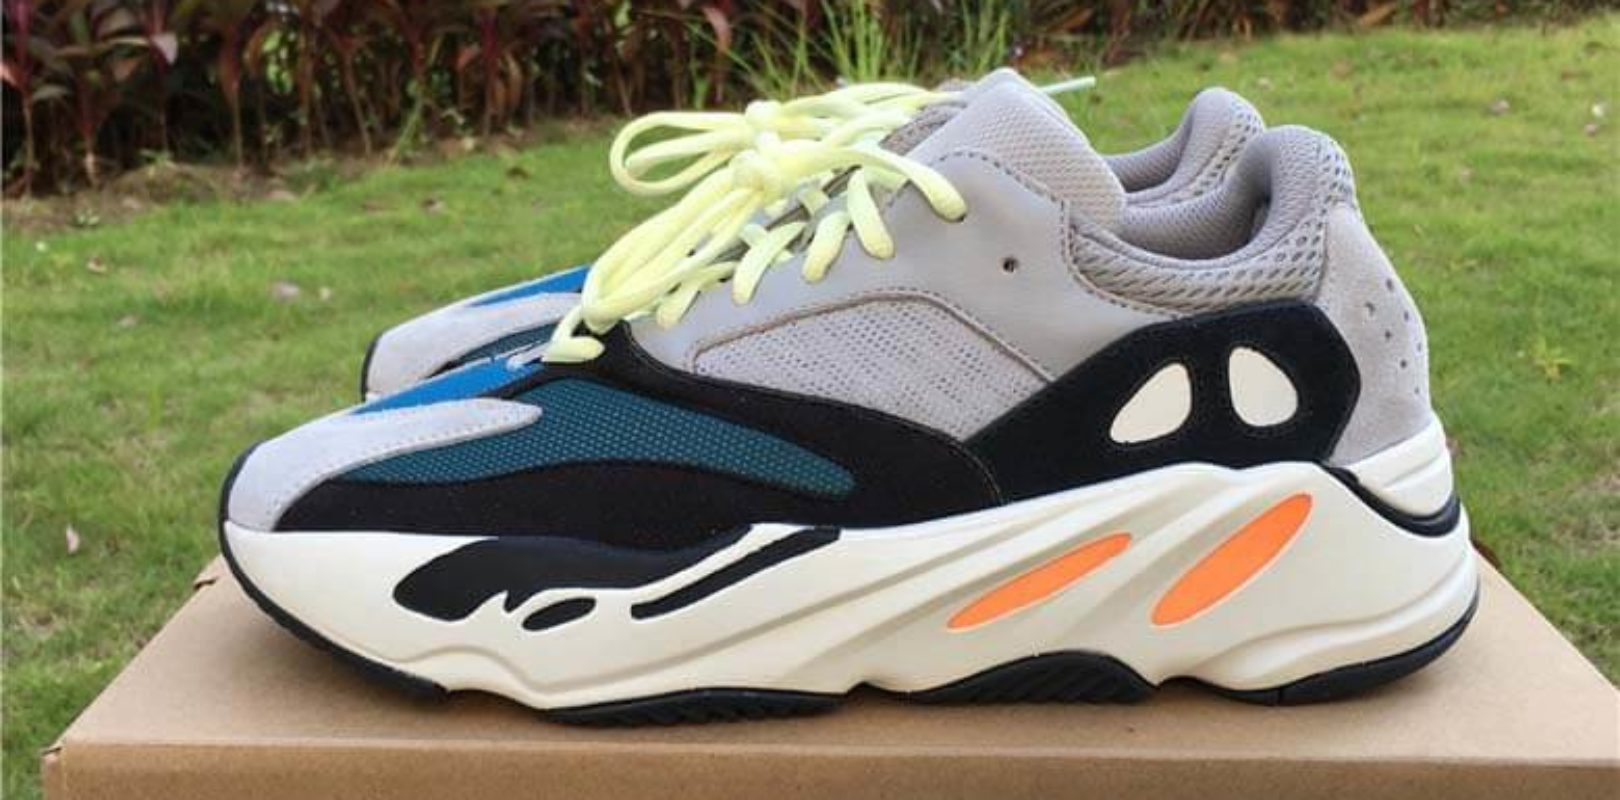 check out e2855 f8222 Adidas Yeezy Boost 700 (Wave Runner) Review: Can you wear ...